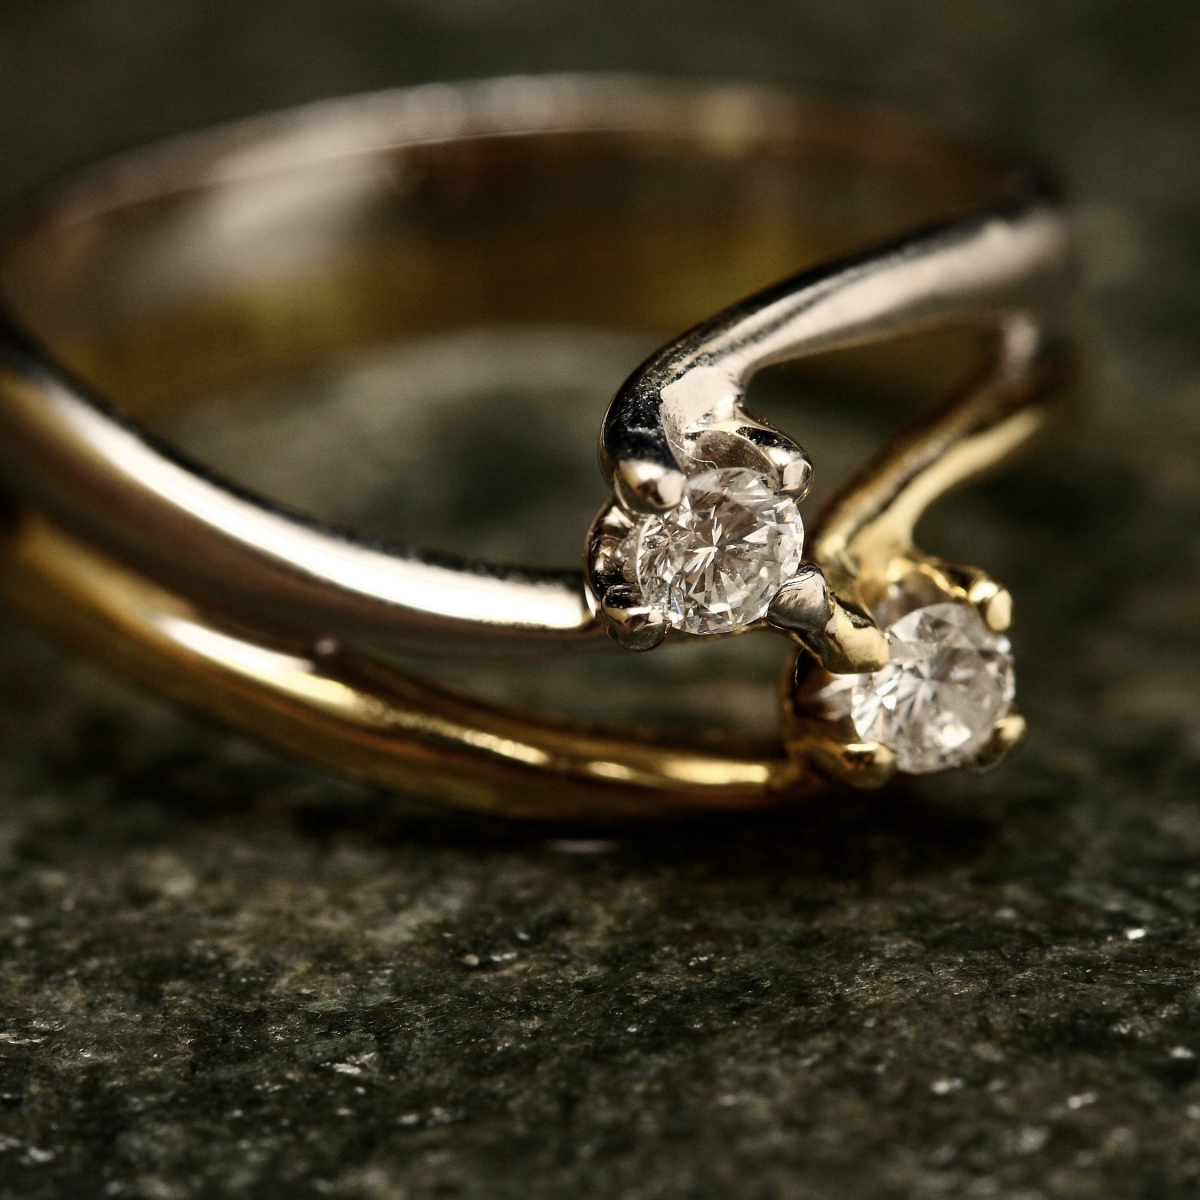 Policy Watch: Diamonds may not be safe for investors any more